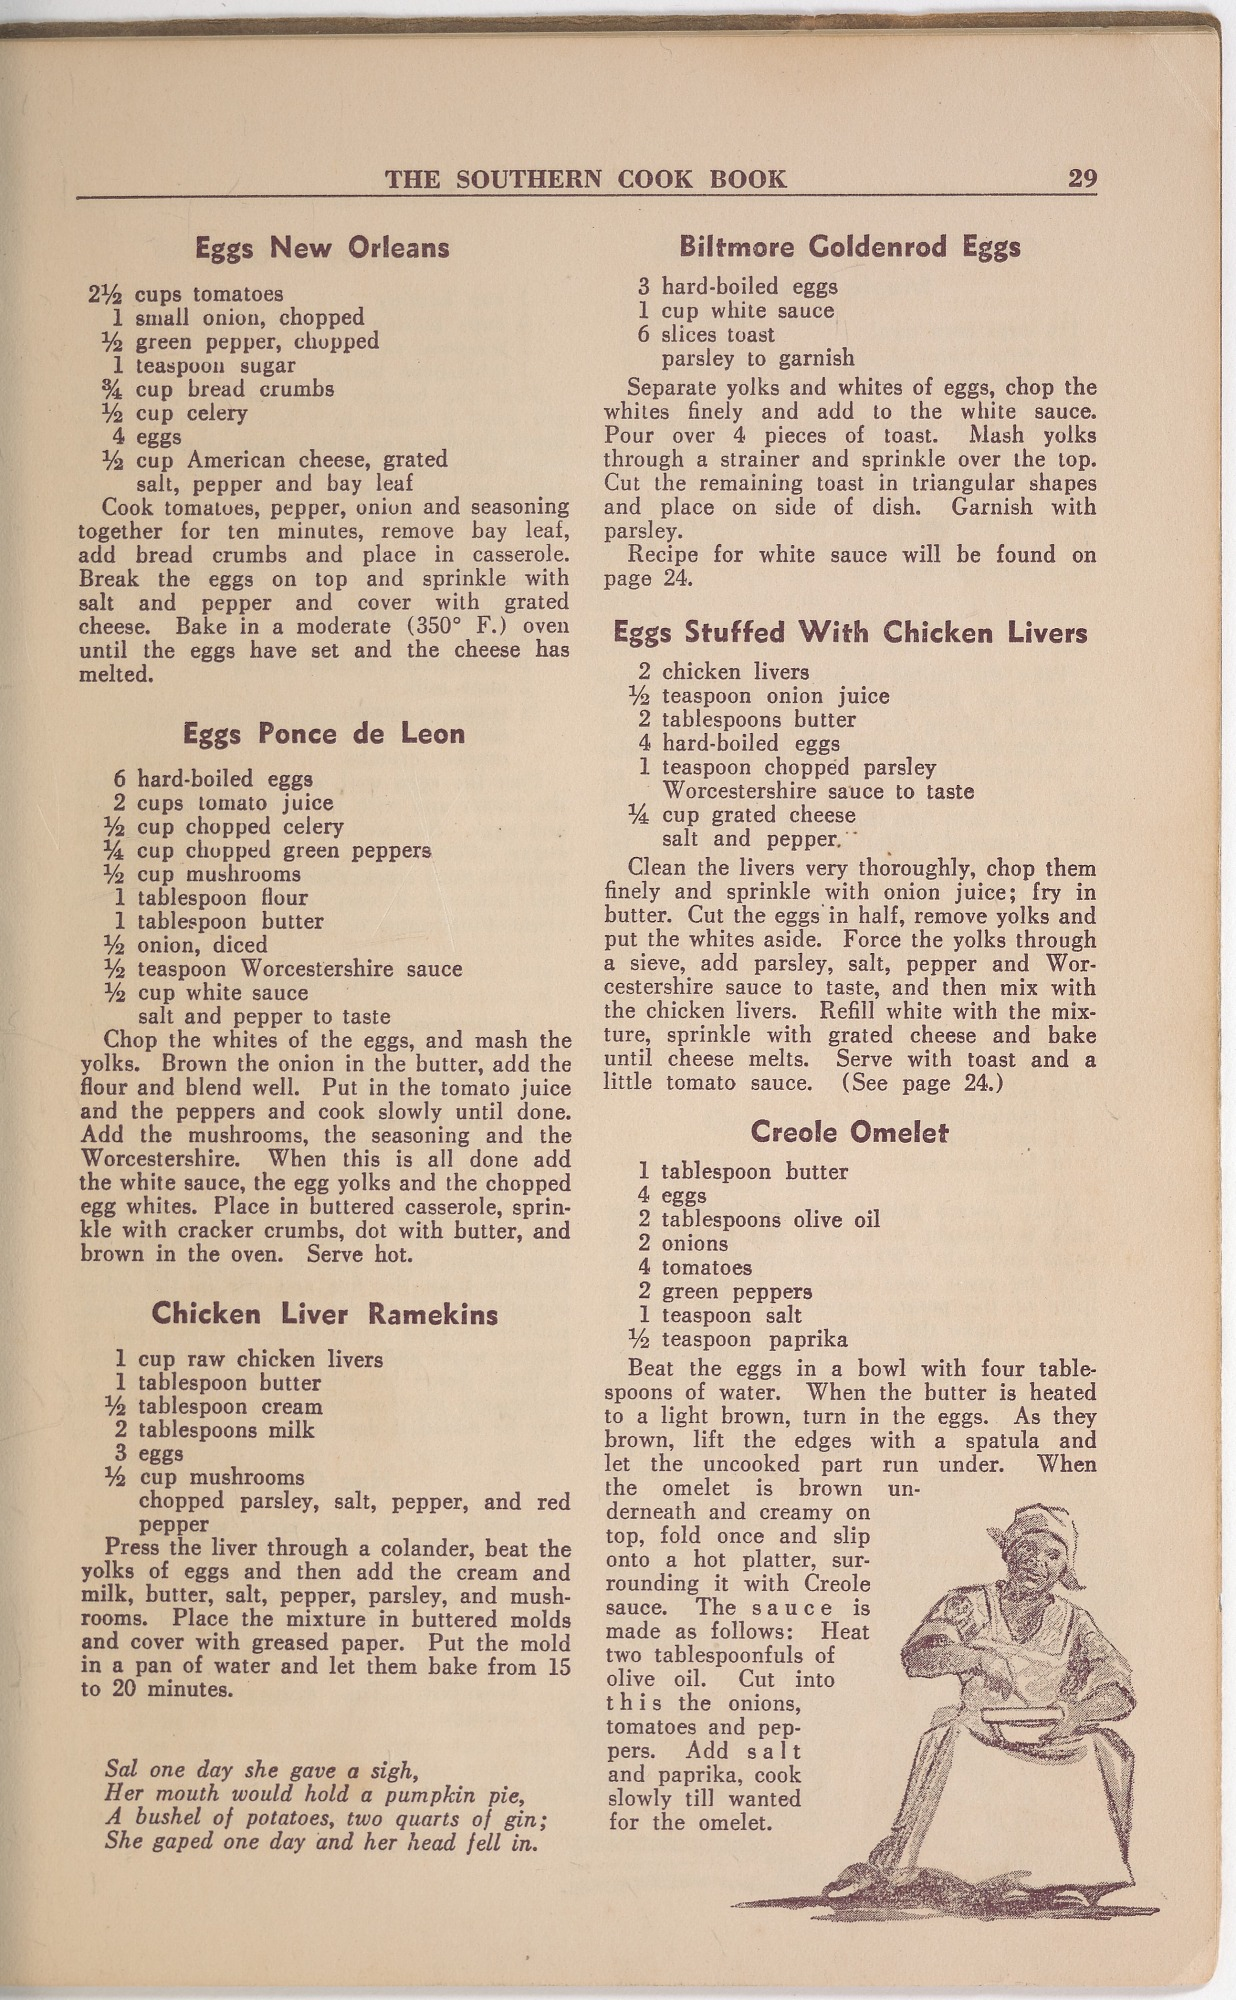 View <I>Southern Cook Book of Fine Old Dixie Recipes</I> digital asset number 31